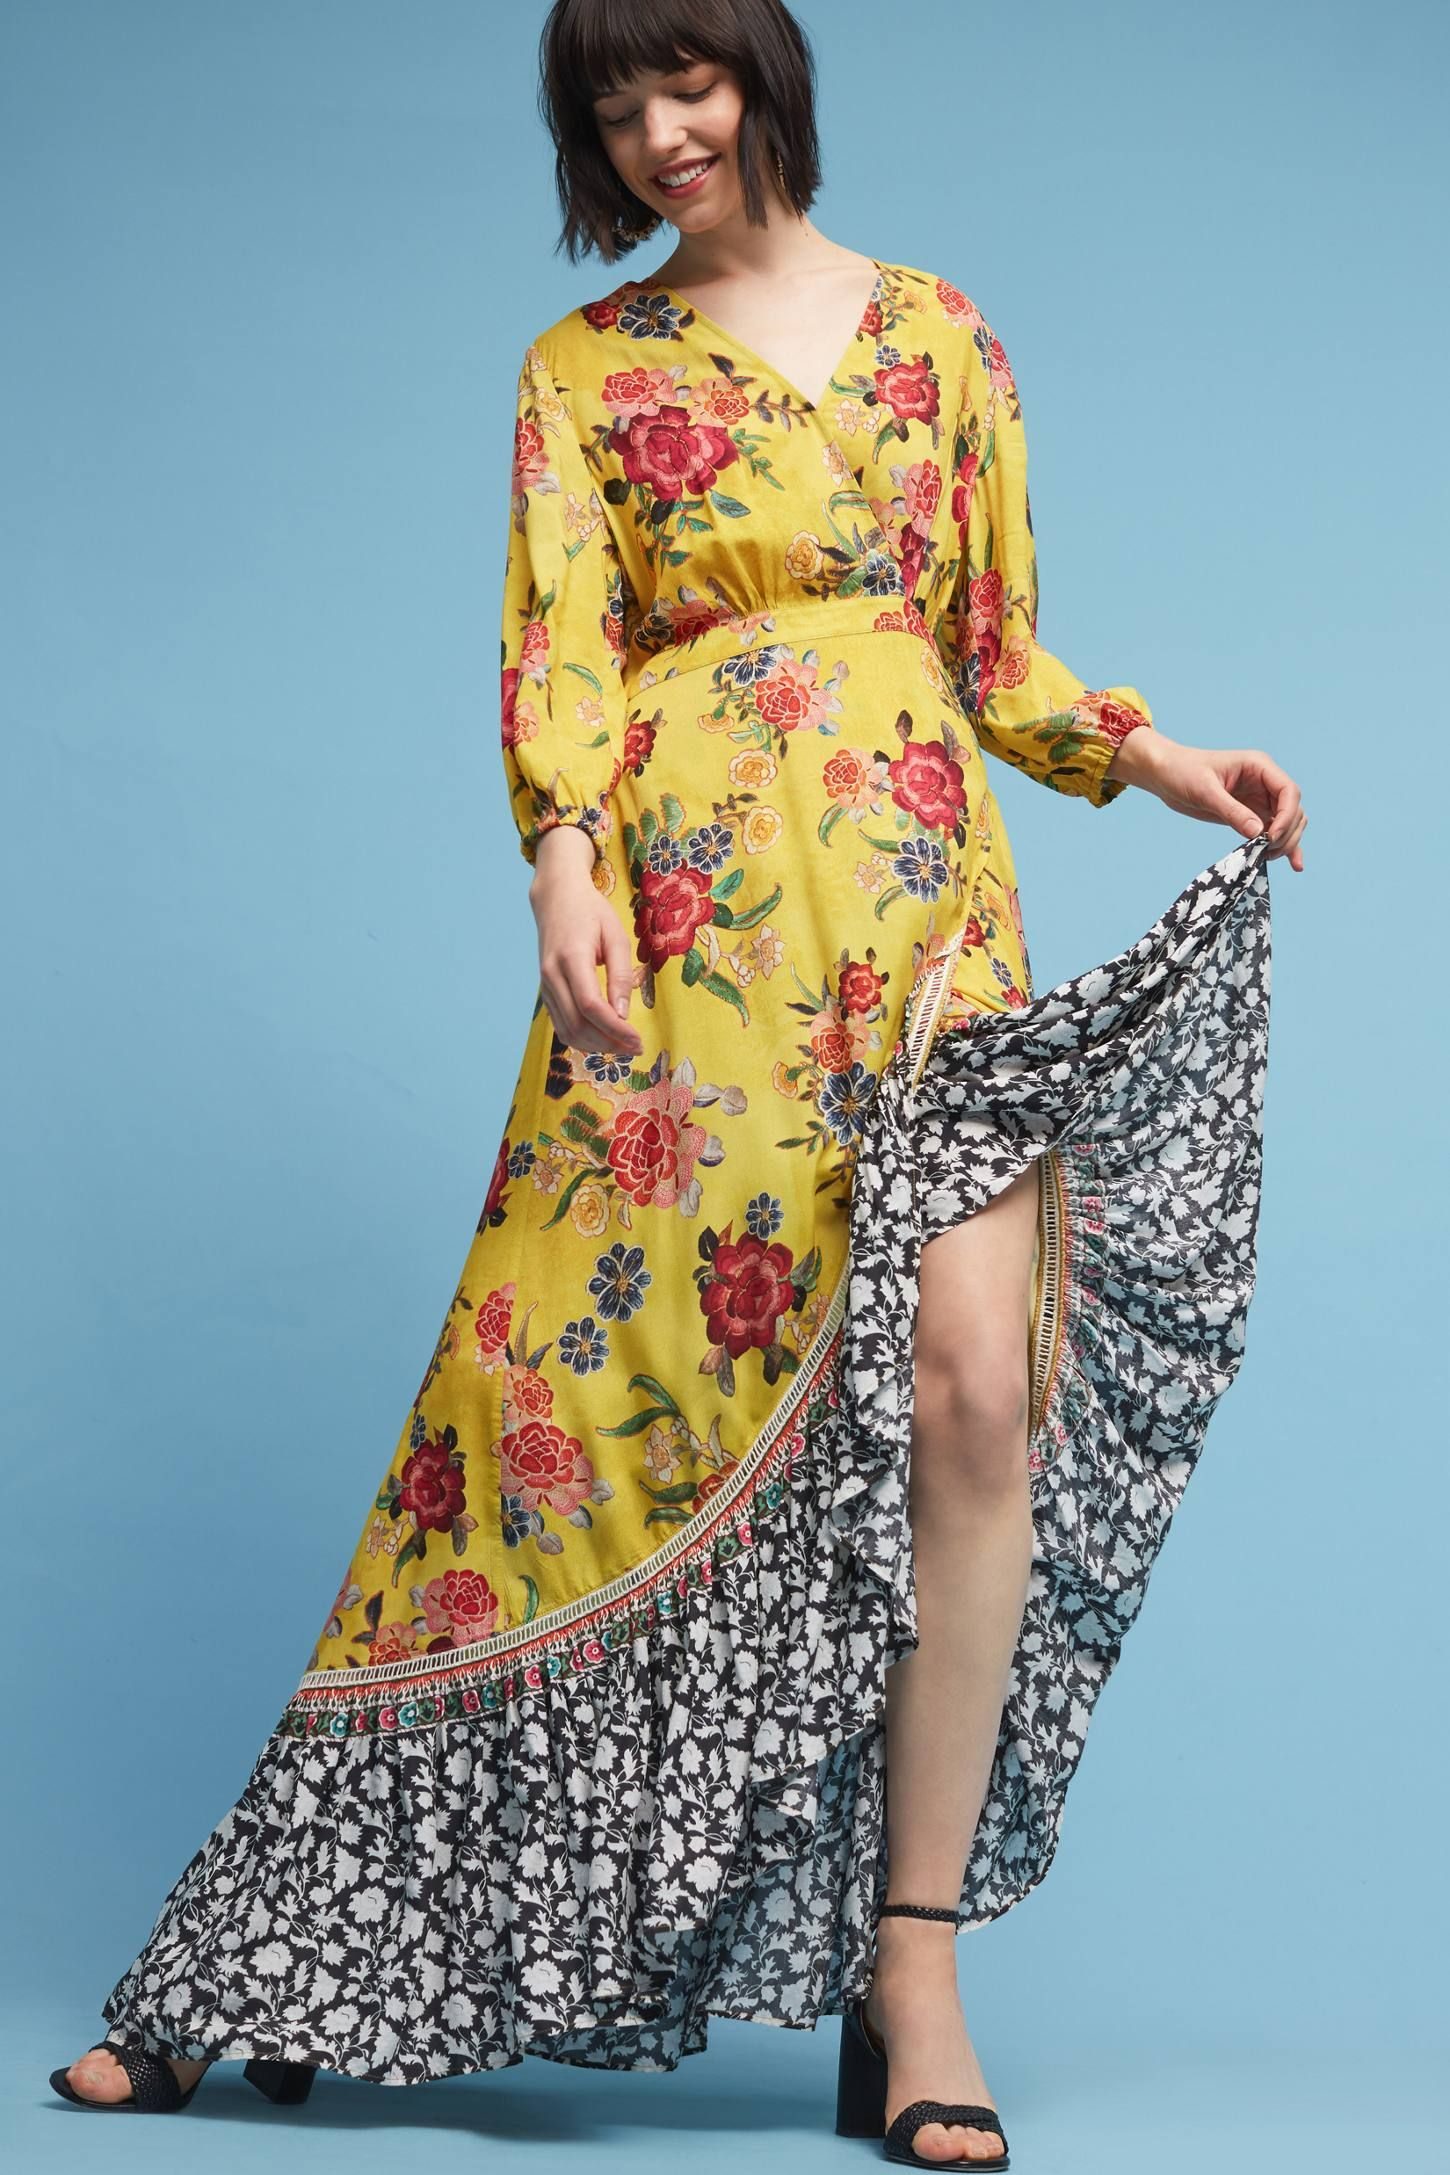 eab72c9bd06 Shop the Farm Rio Sunlit Floral Maxi Dress and more Anthropologie at  Anthropologie today. Read customer reviews